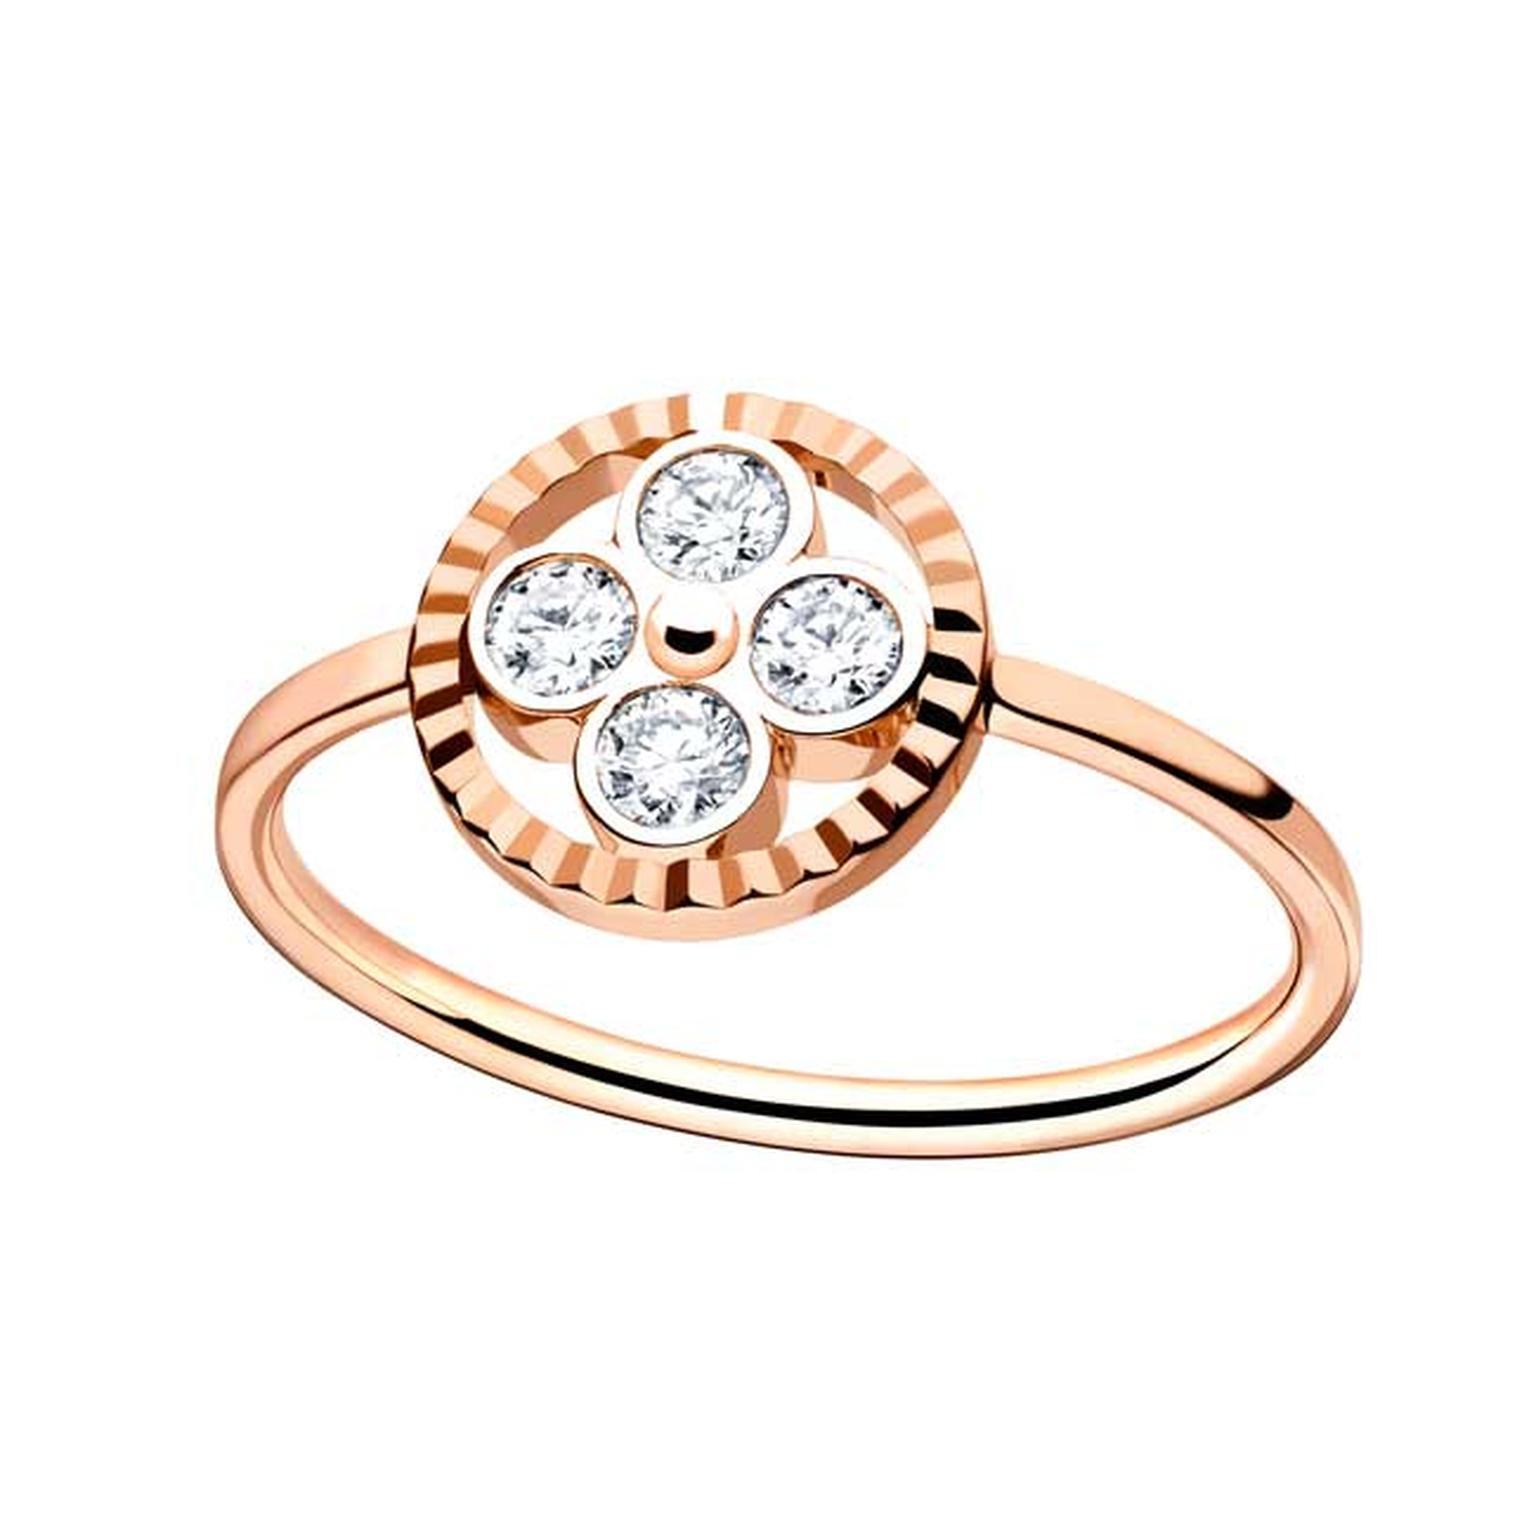 Louis Vuitton Monogram Sun and Stars collection Sun ring in rose gold_main